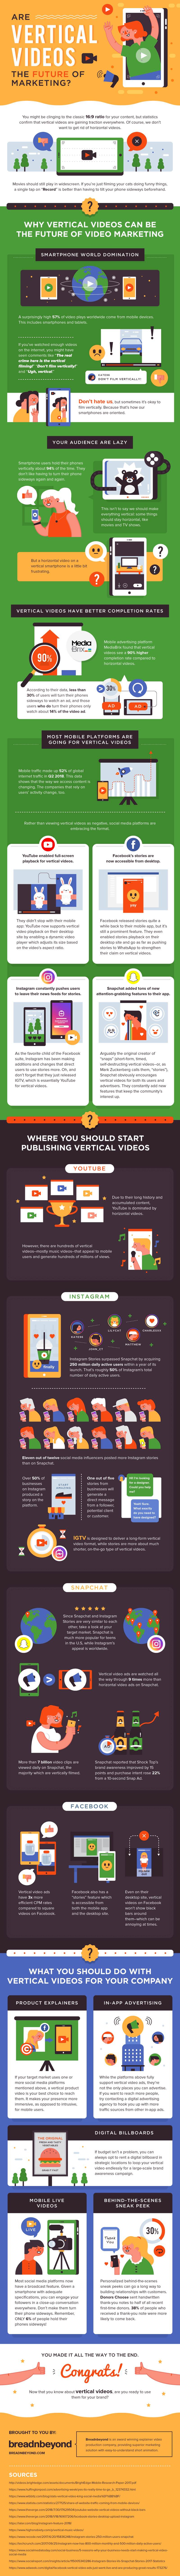 vertical videos social media marketing infographic